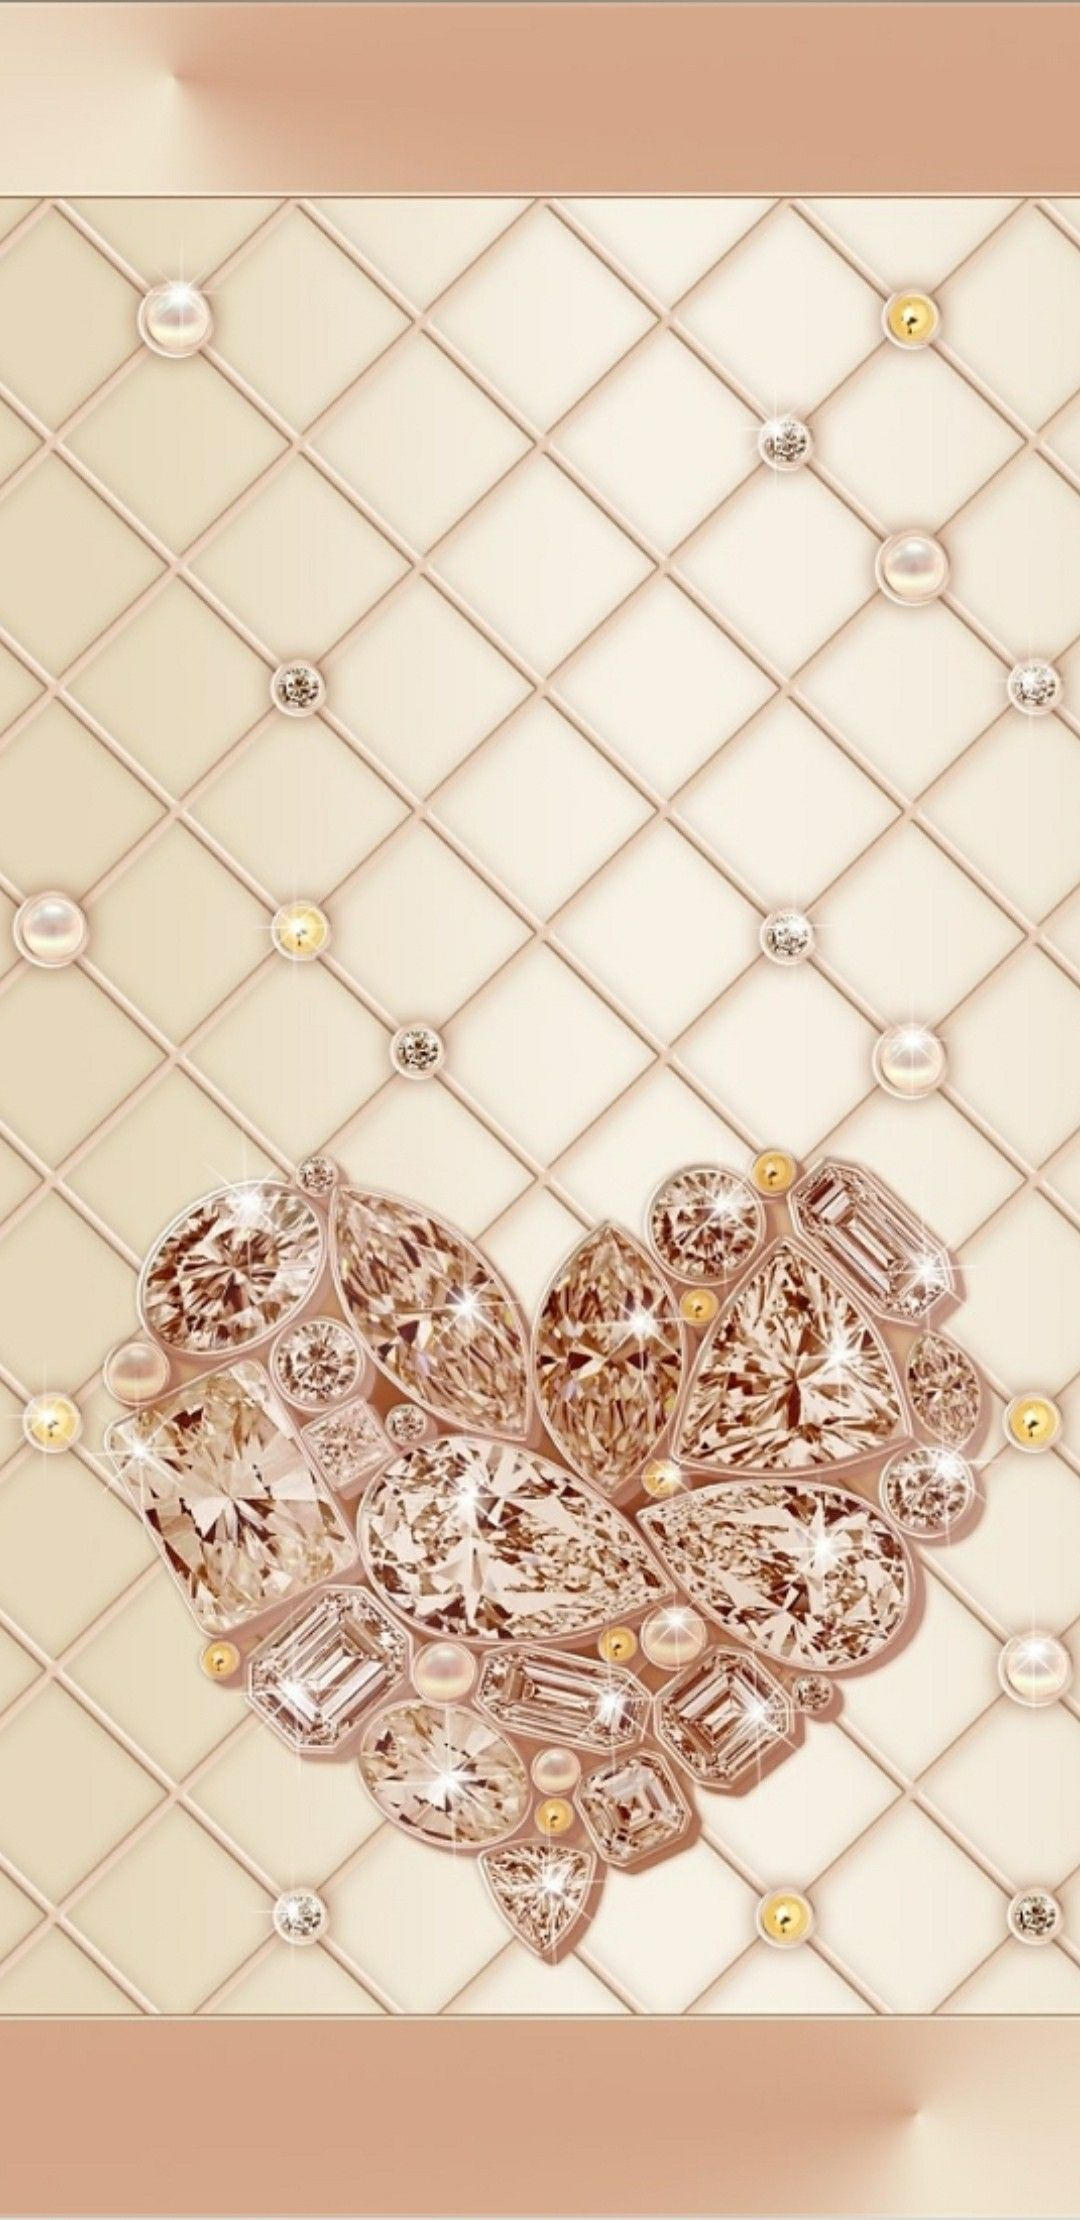 Rose gold diamonds hearts and pearls wallpaper hearts - Rose gold background for iphone ...